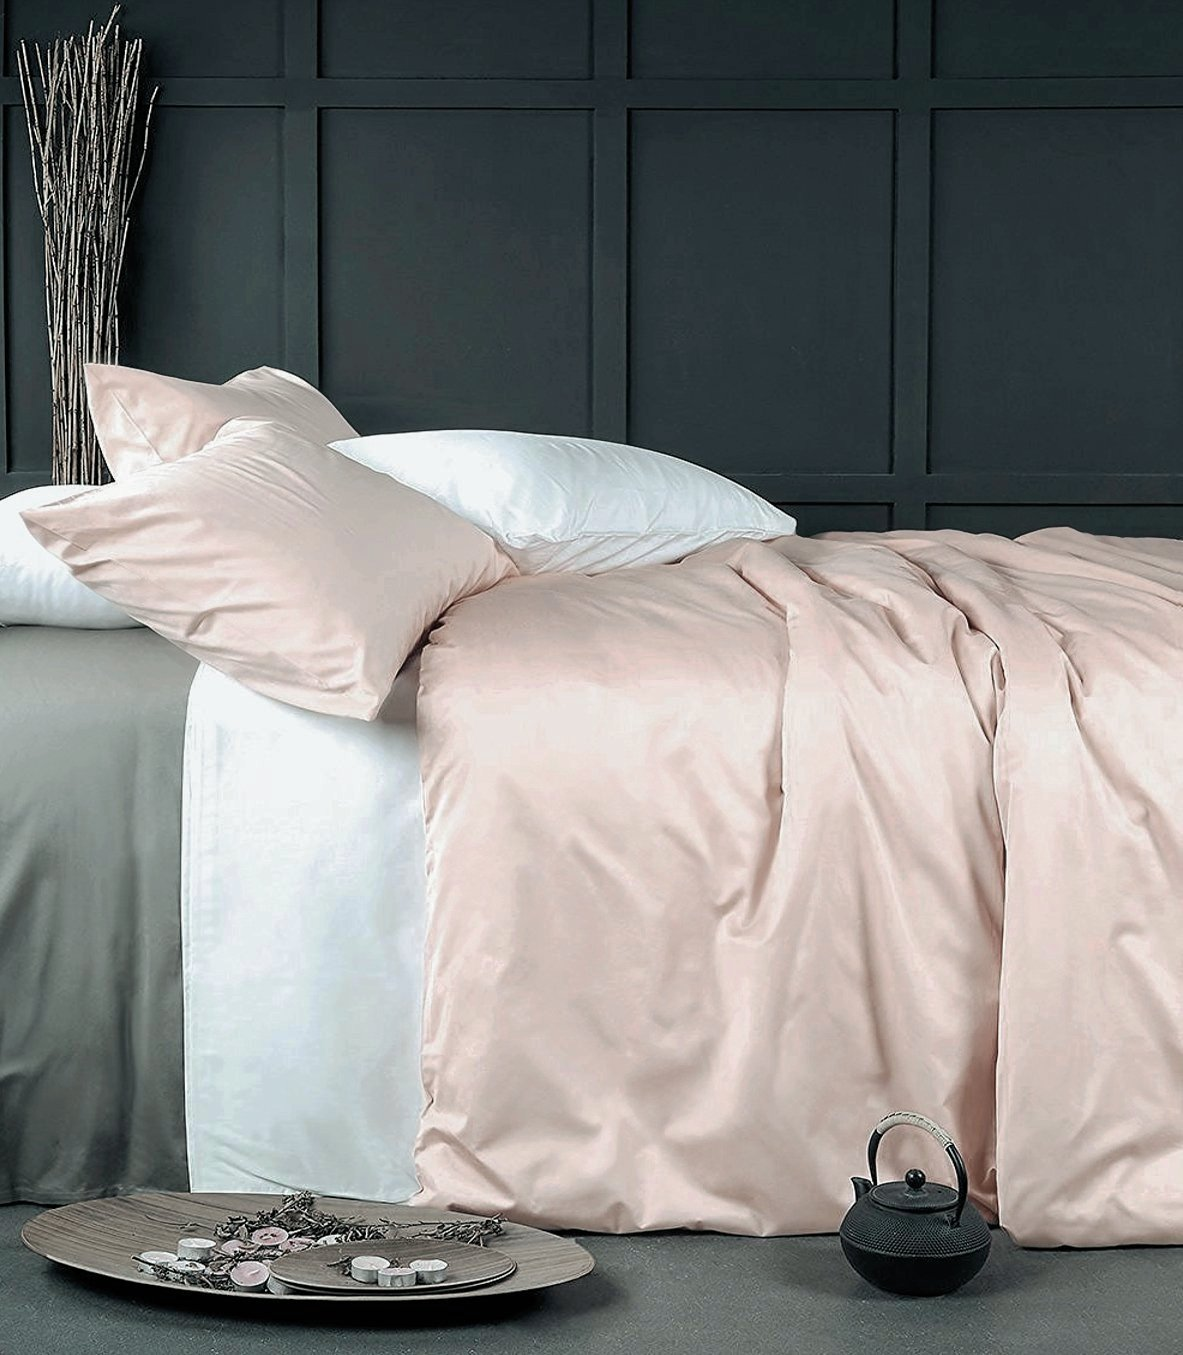 full cover colored quilt grey furniture of fresh dusty bedding and amazing better piece comforter elegant blush forter duvet floral ruching luxury homes gardens covers size rose